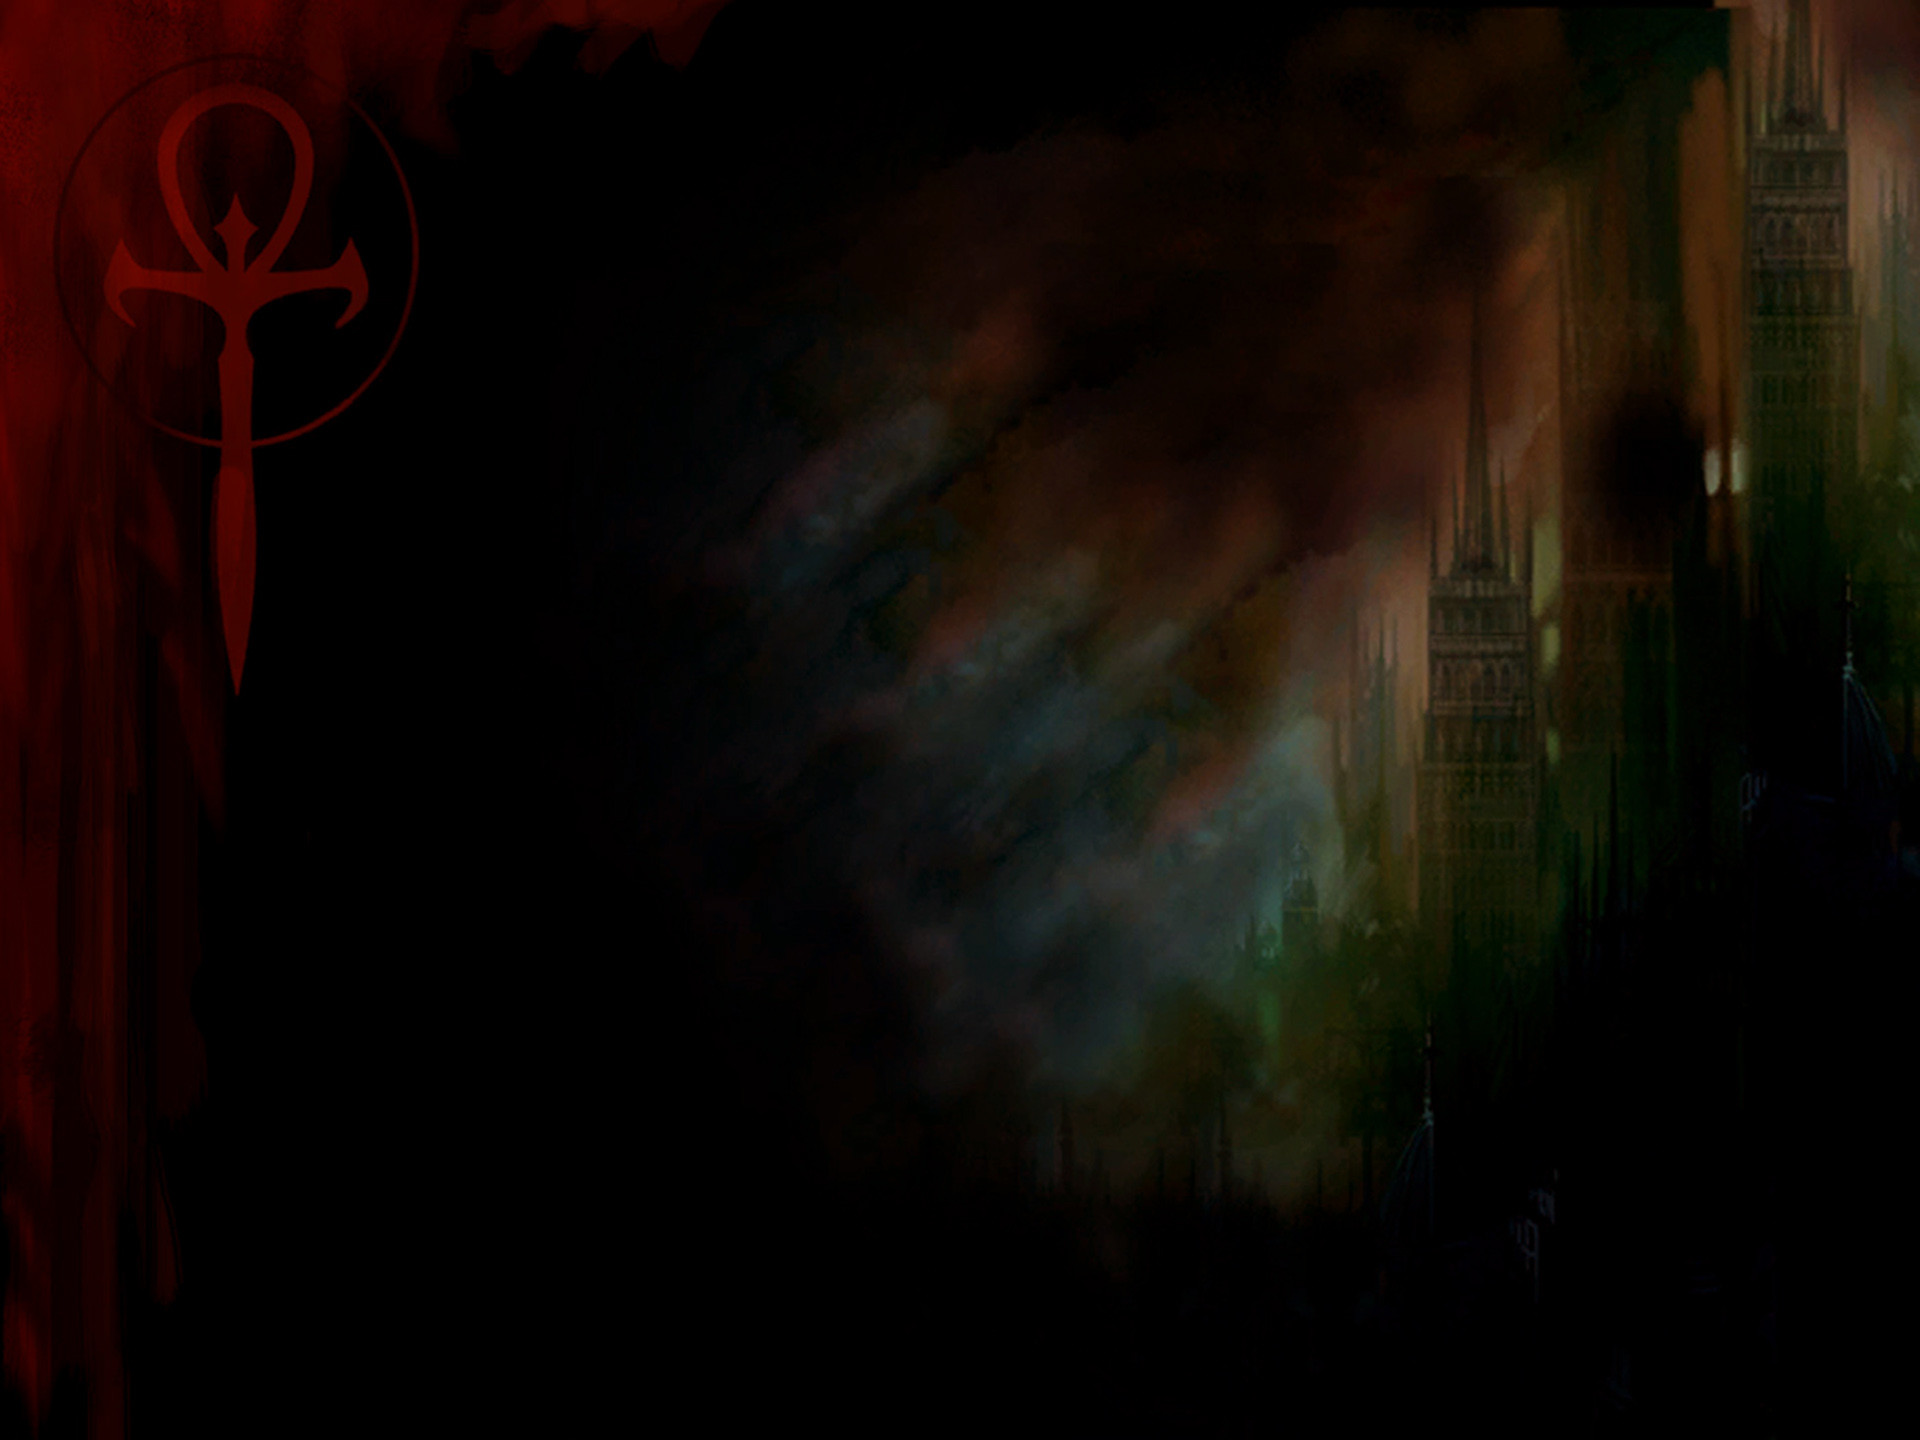 1920x1440 Vampire: The Masquerade HD Wallpapers